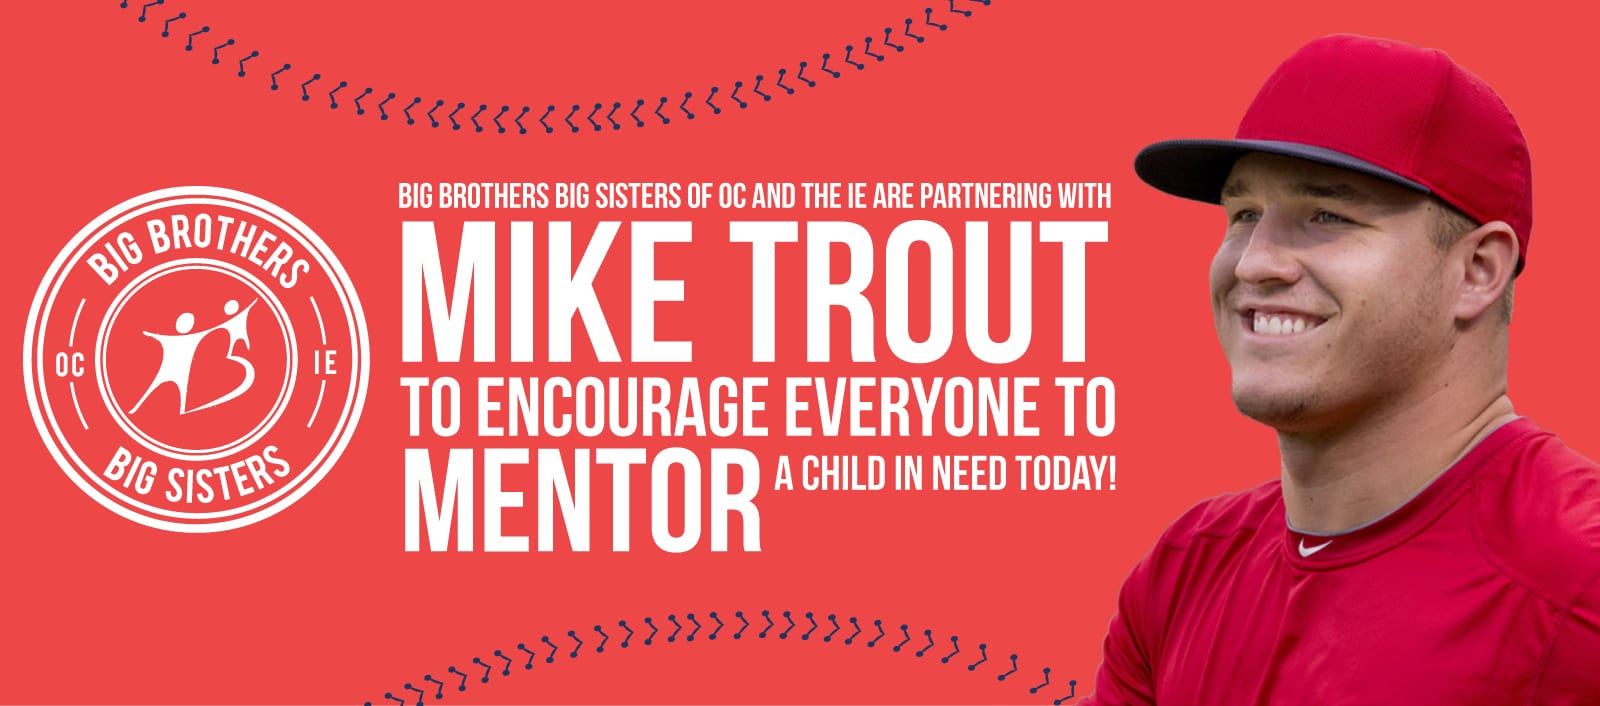 BBBS_MikeTrout_Social-1